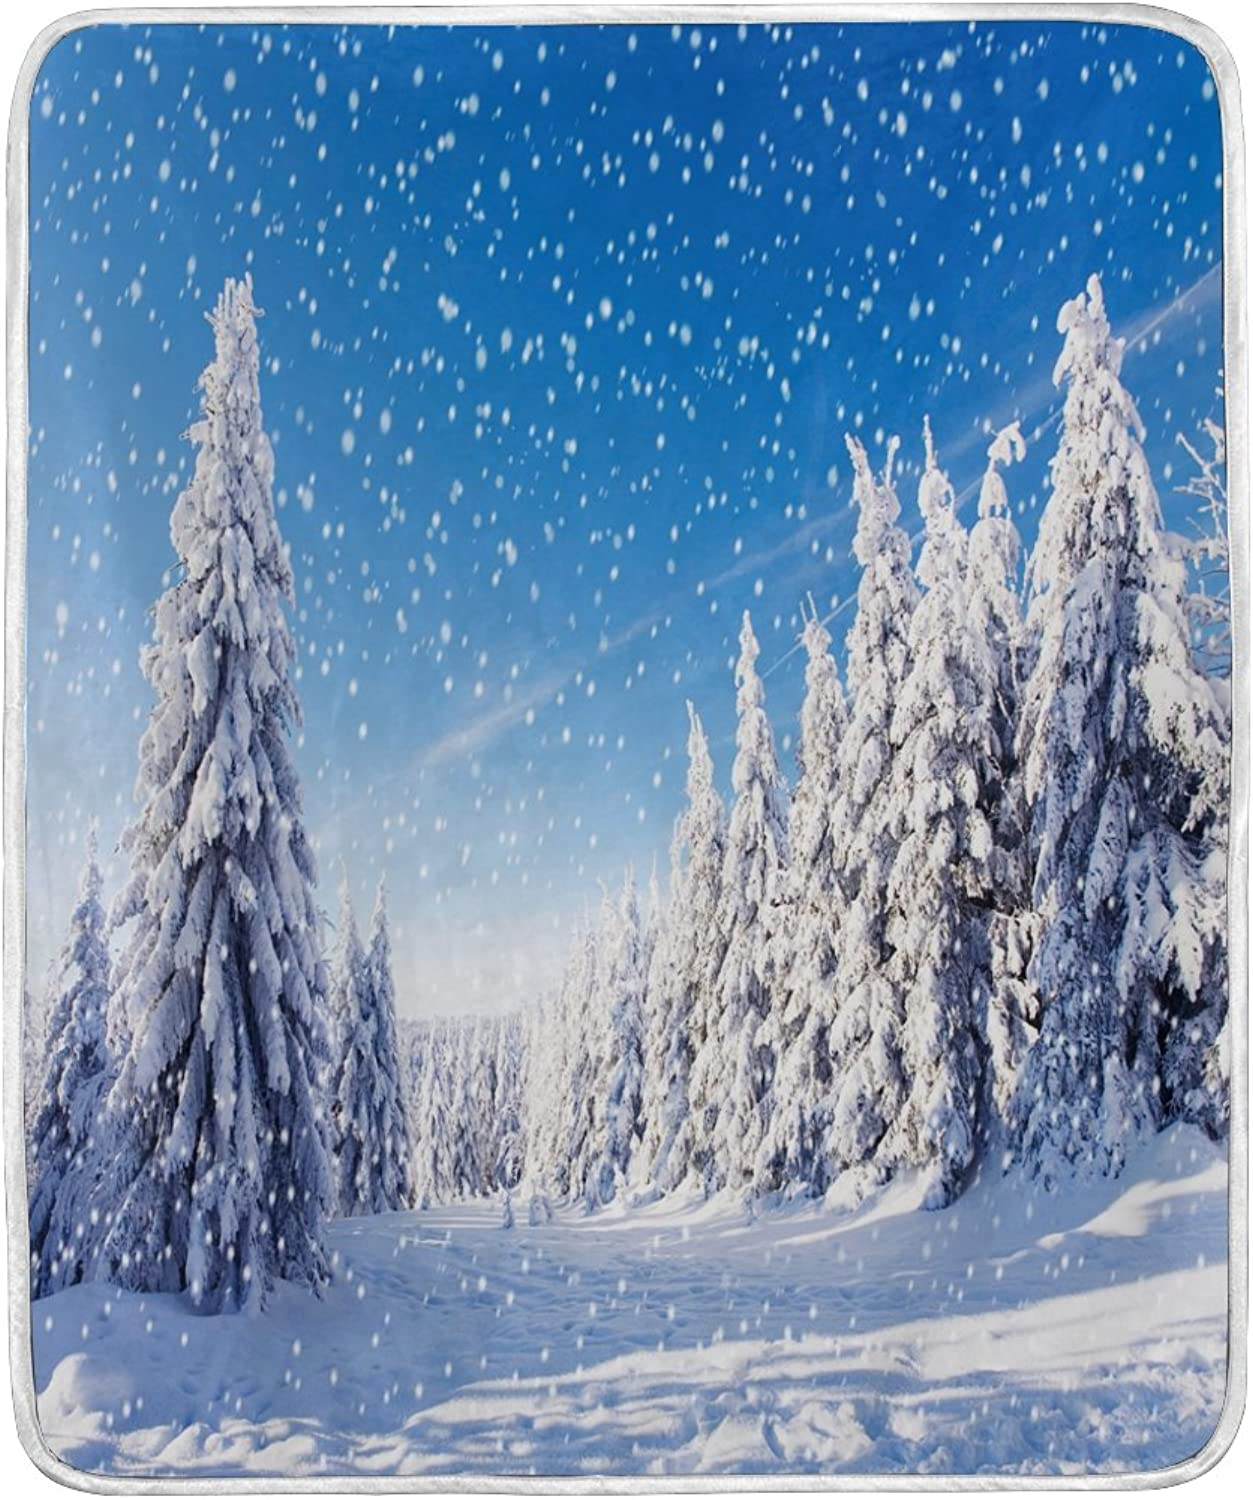 ALAZA Home Decor Snow Forest Landscape Winter Blanket Soft Warm Blankets for Bed Couch Sofa Lightweight Travelling Camping 60 x 50 inch Throw Size for Kids Boys Women